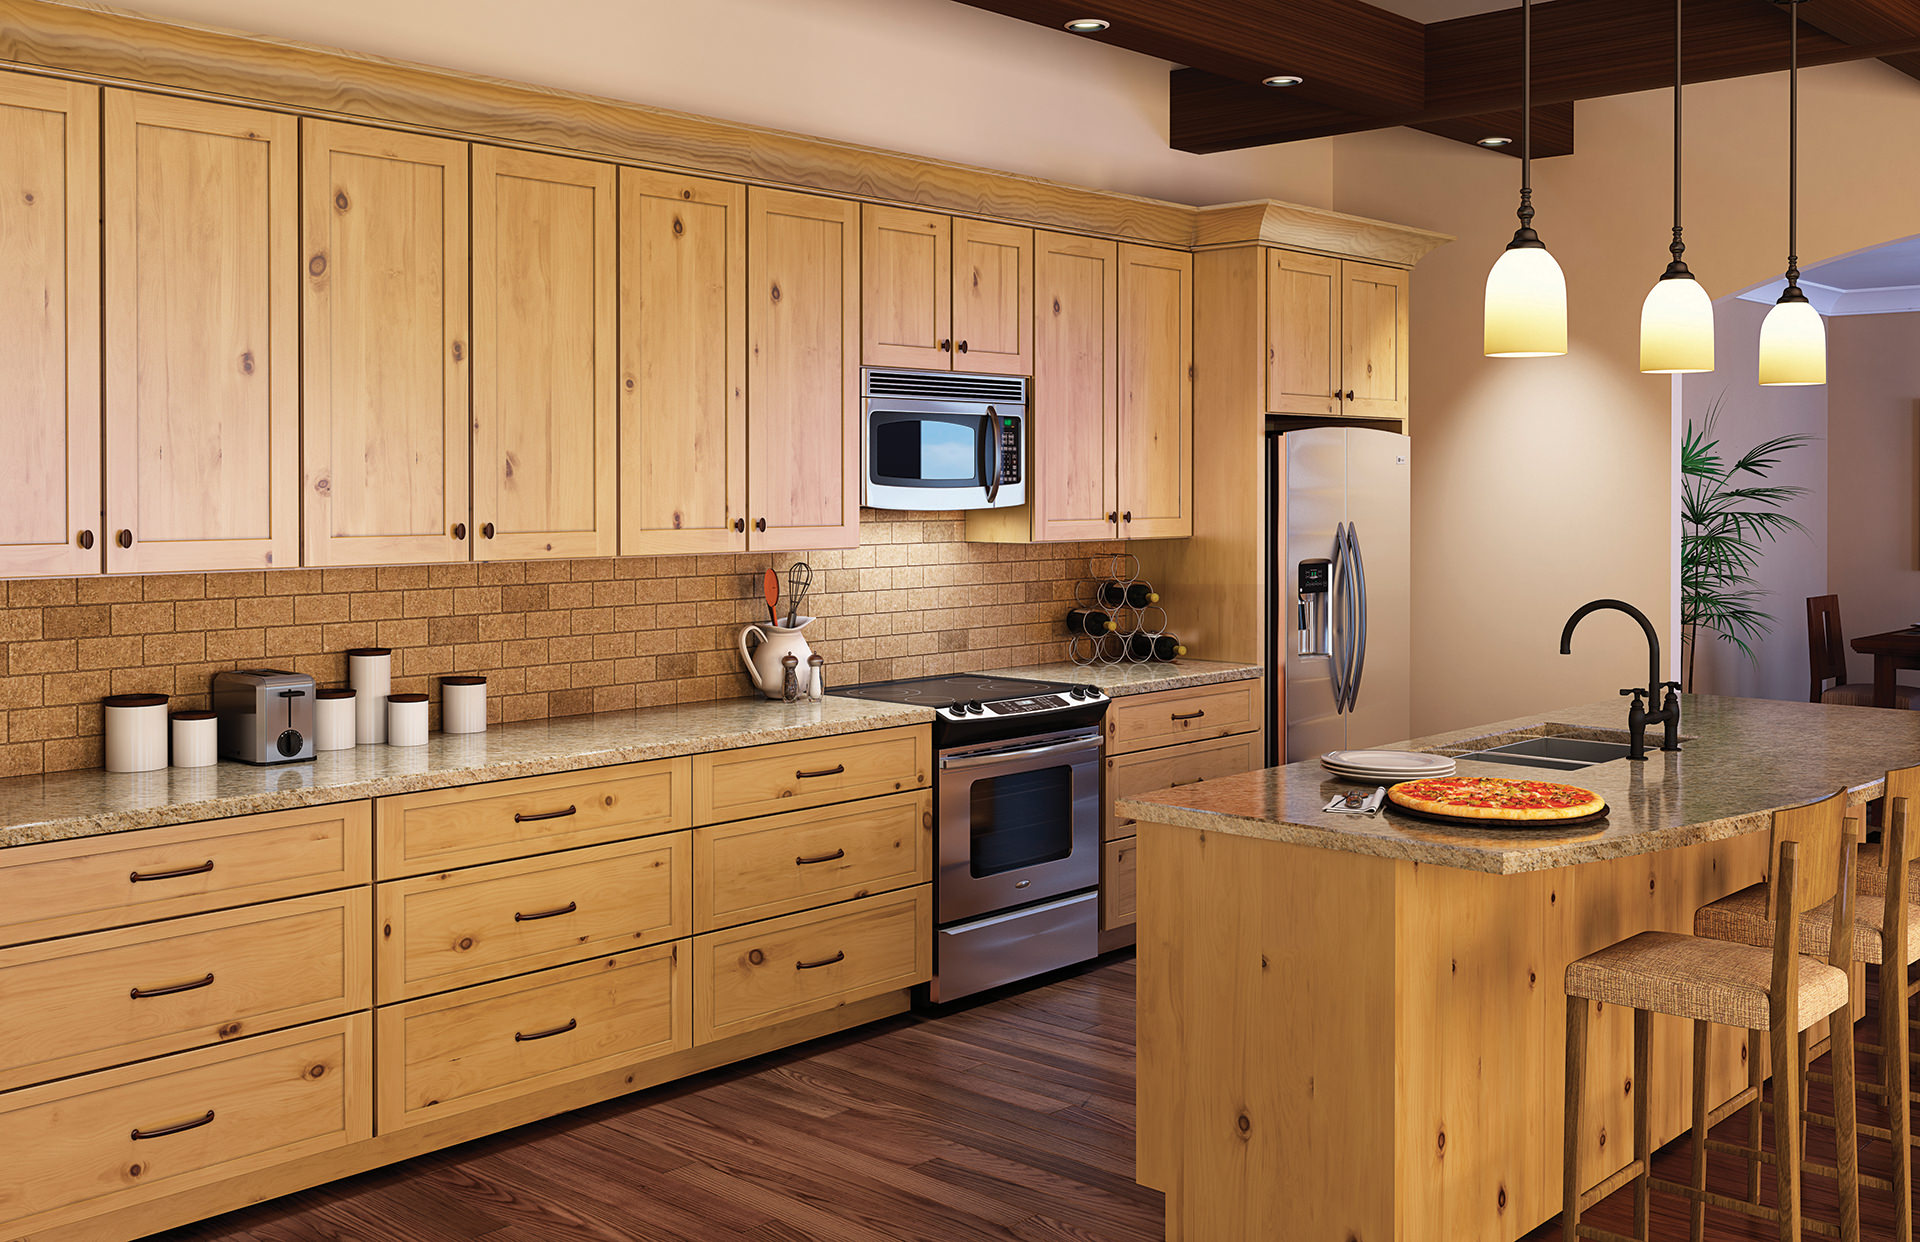 Echelon Kitchen Cabinets | Kitchen & Bathroom Cabinets